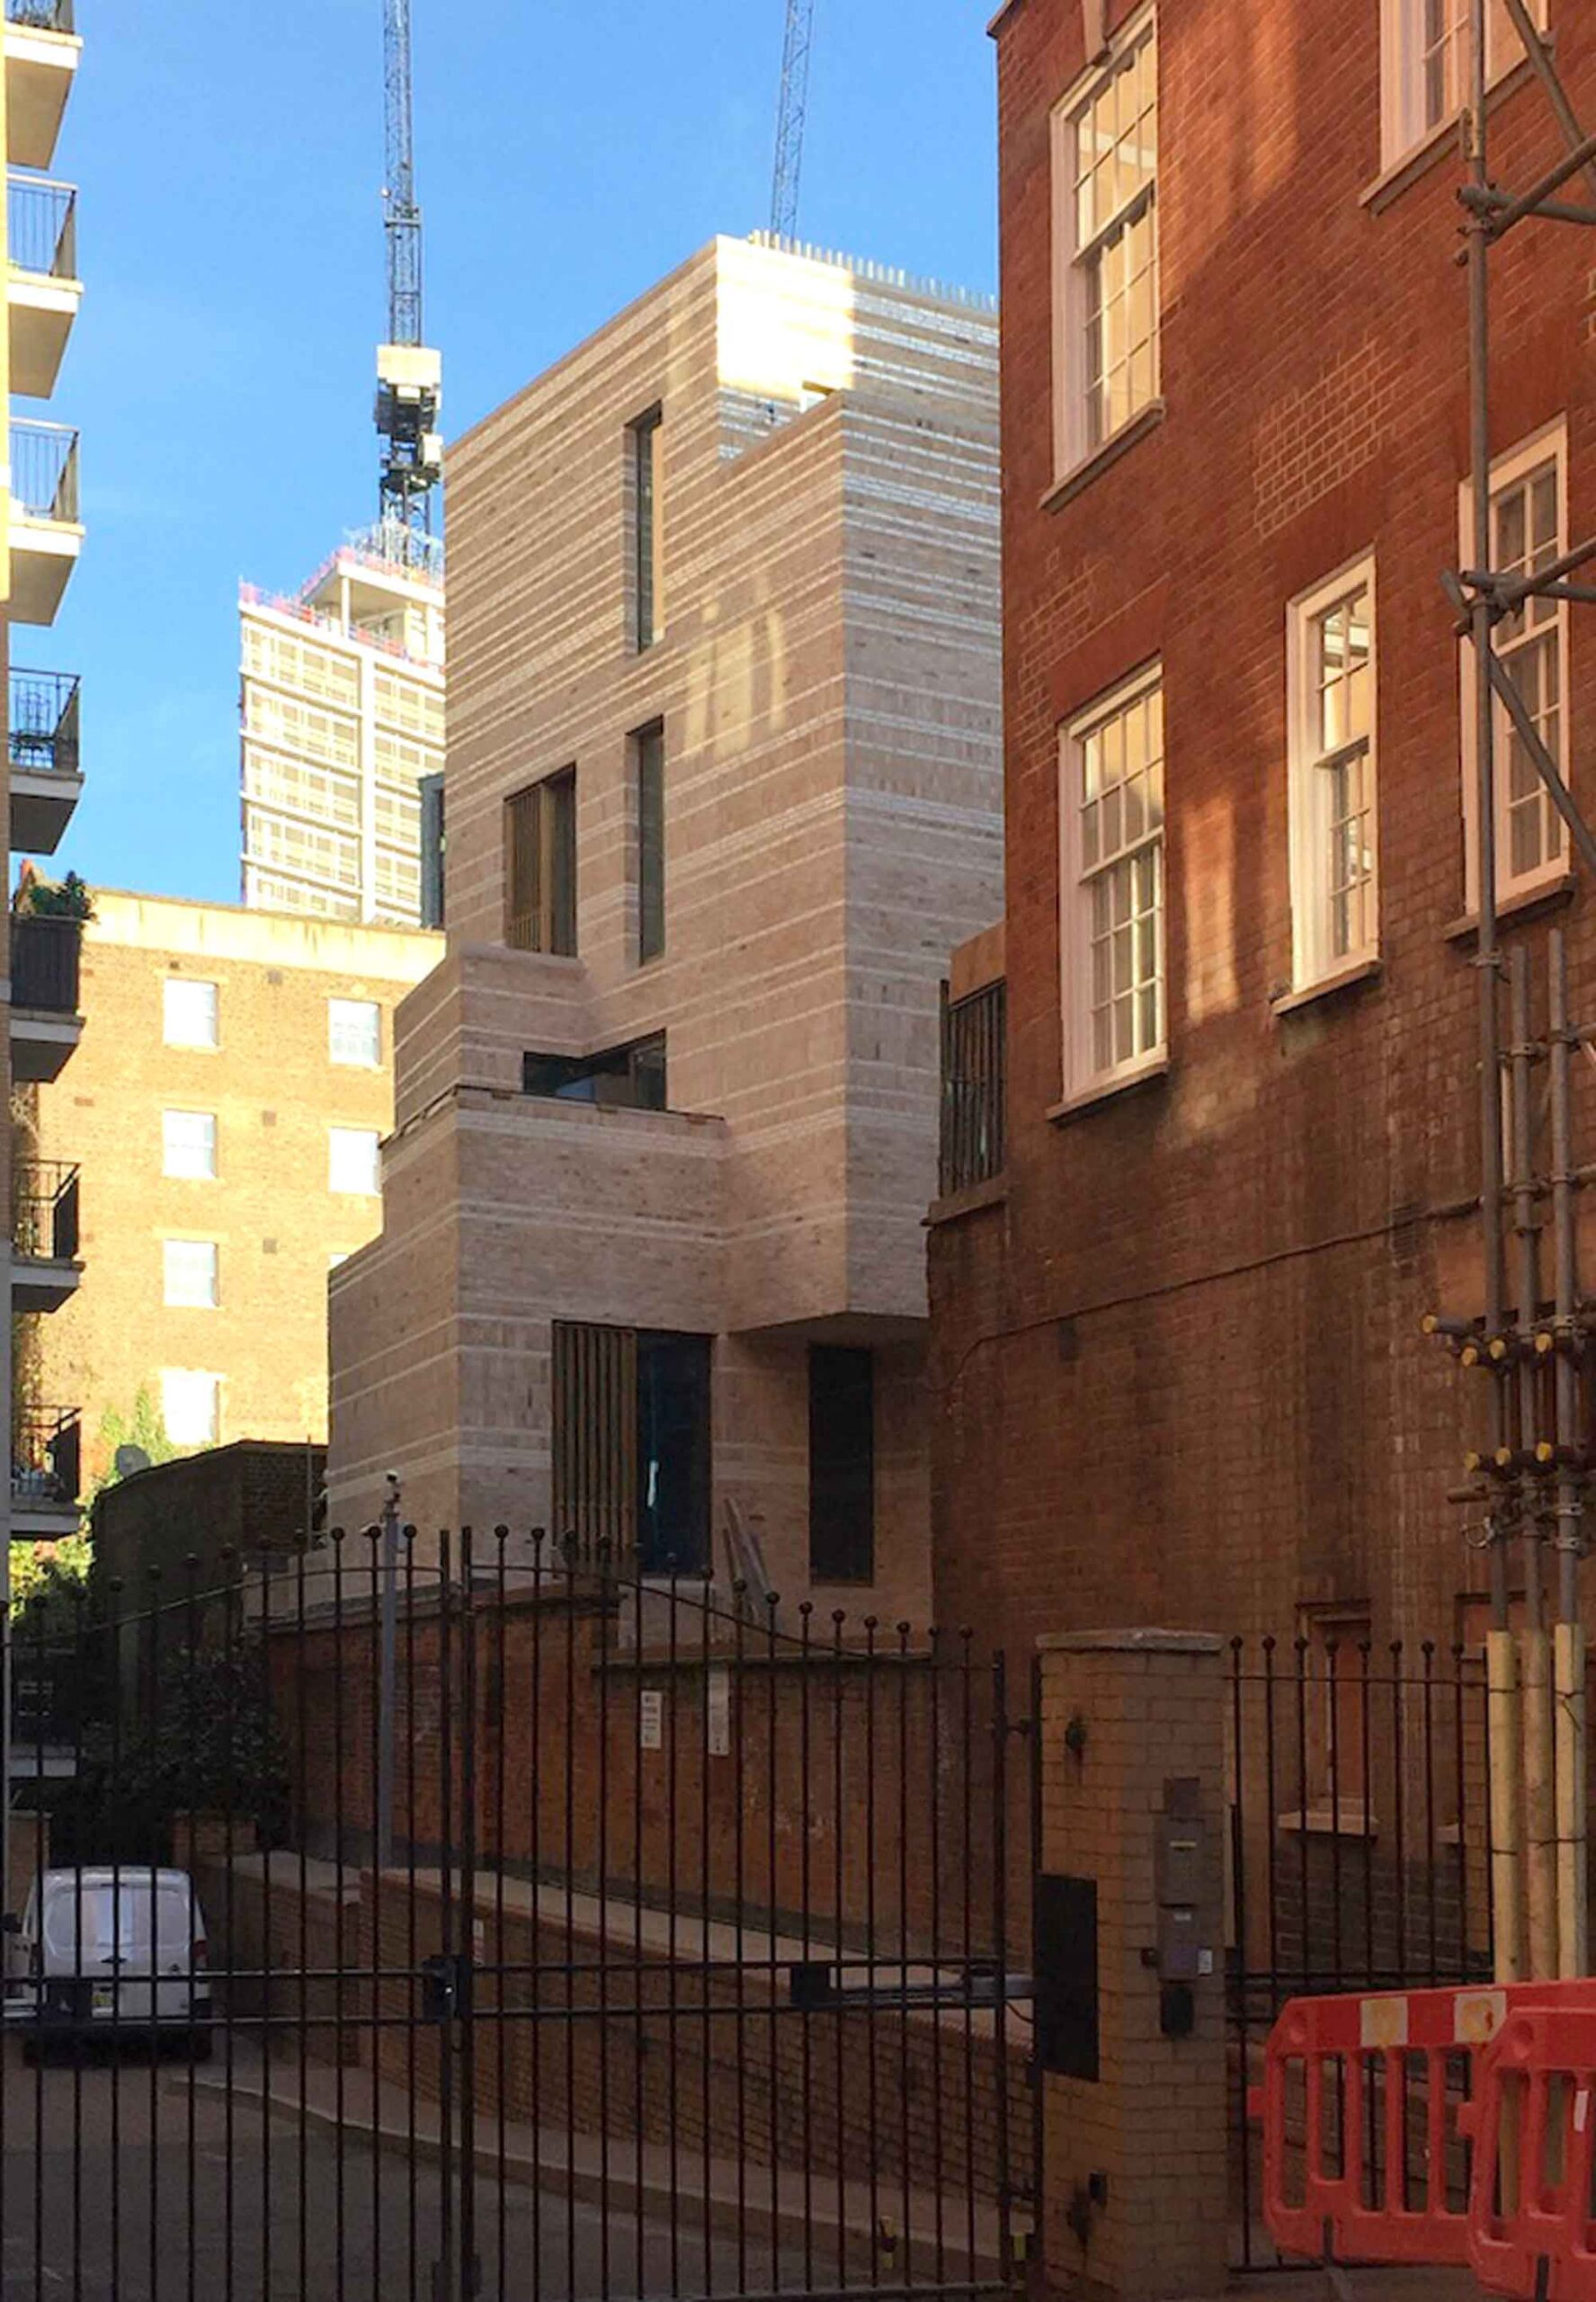 westminster-fire-station-openstudio-architects-view-from-street